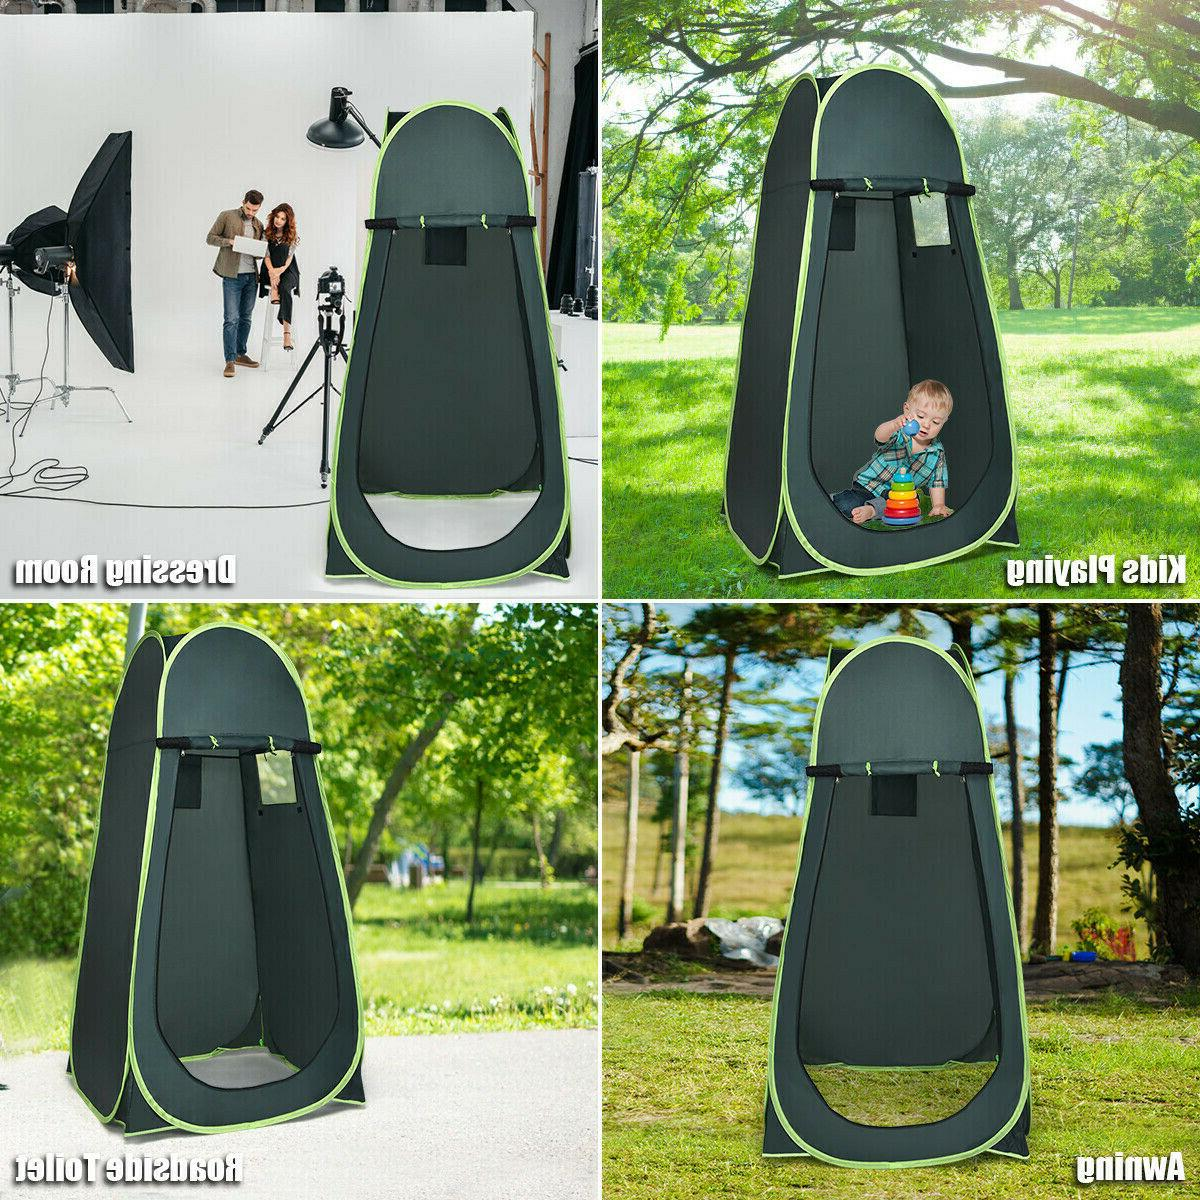 Portable Green Outdoor Up Tent Camping Privacy Changing Room